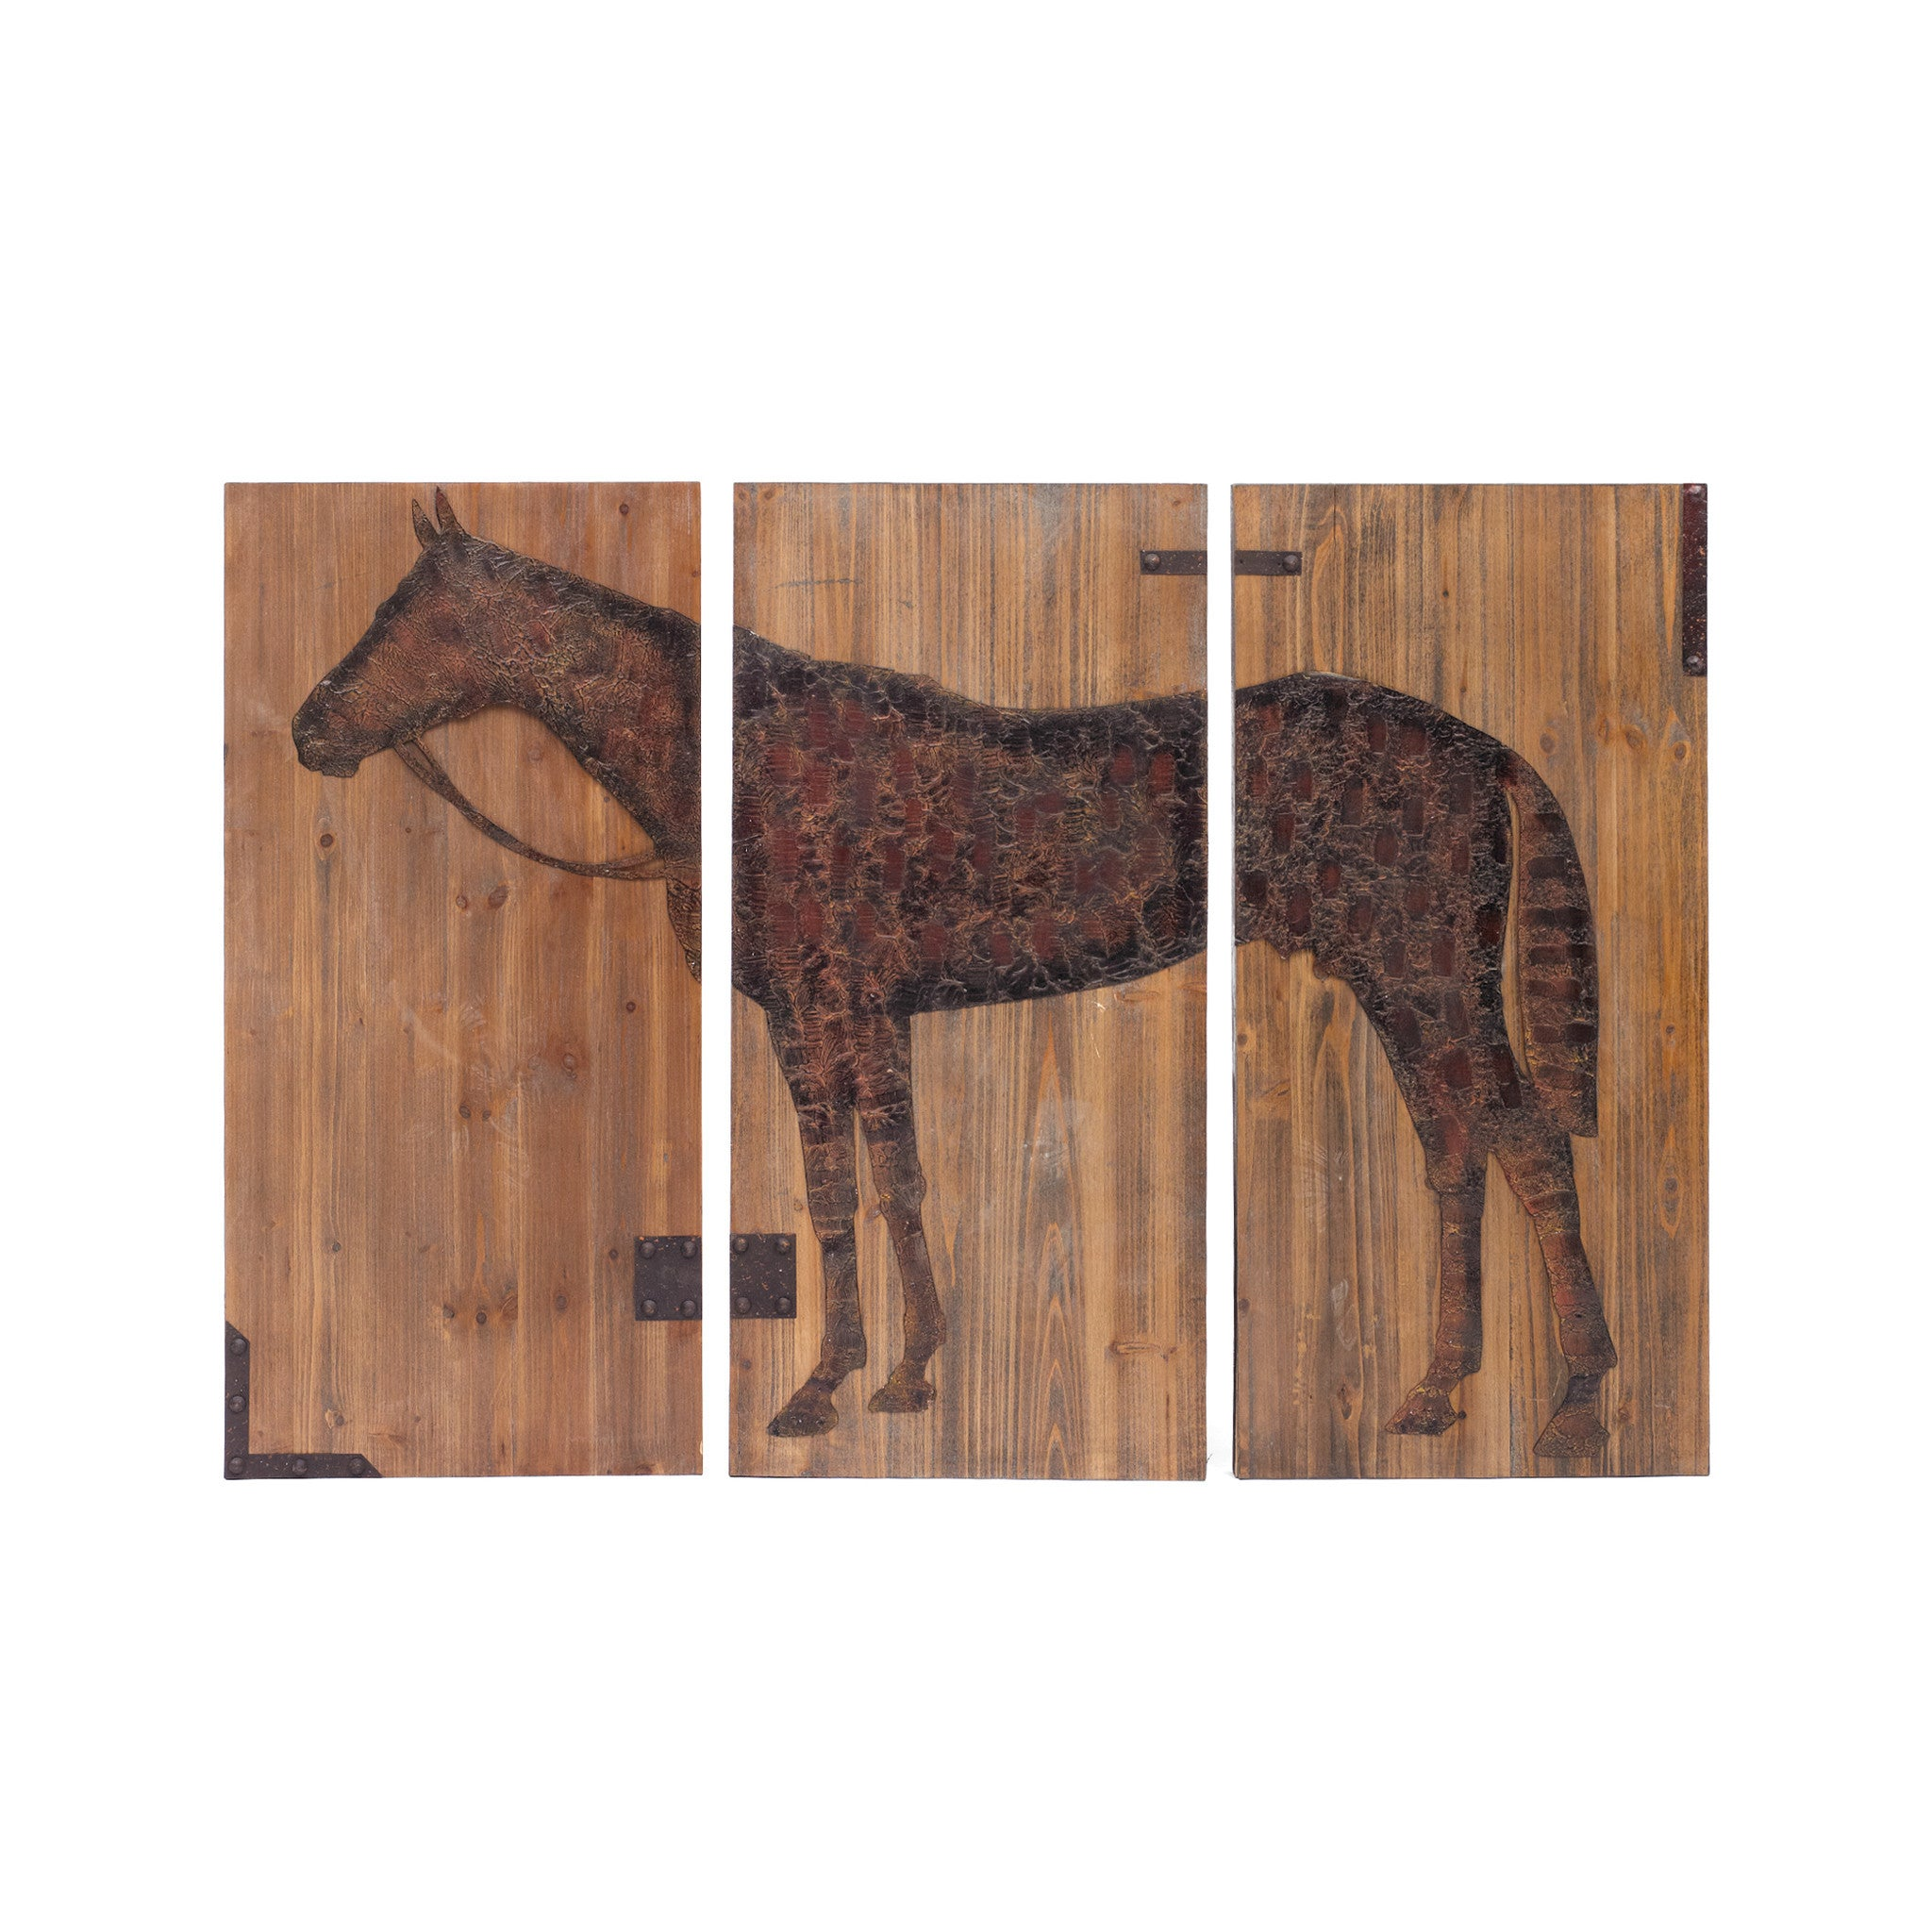 equestrian print wall art in metal and wood. Black Bedroom Furniture Sets. Home Design Ideas